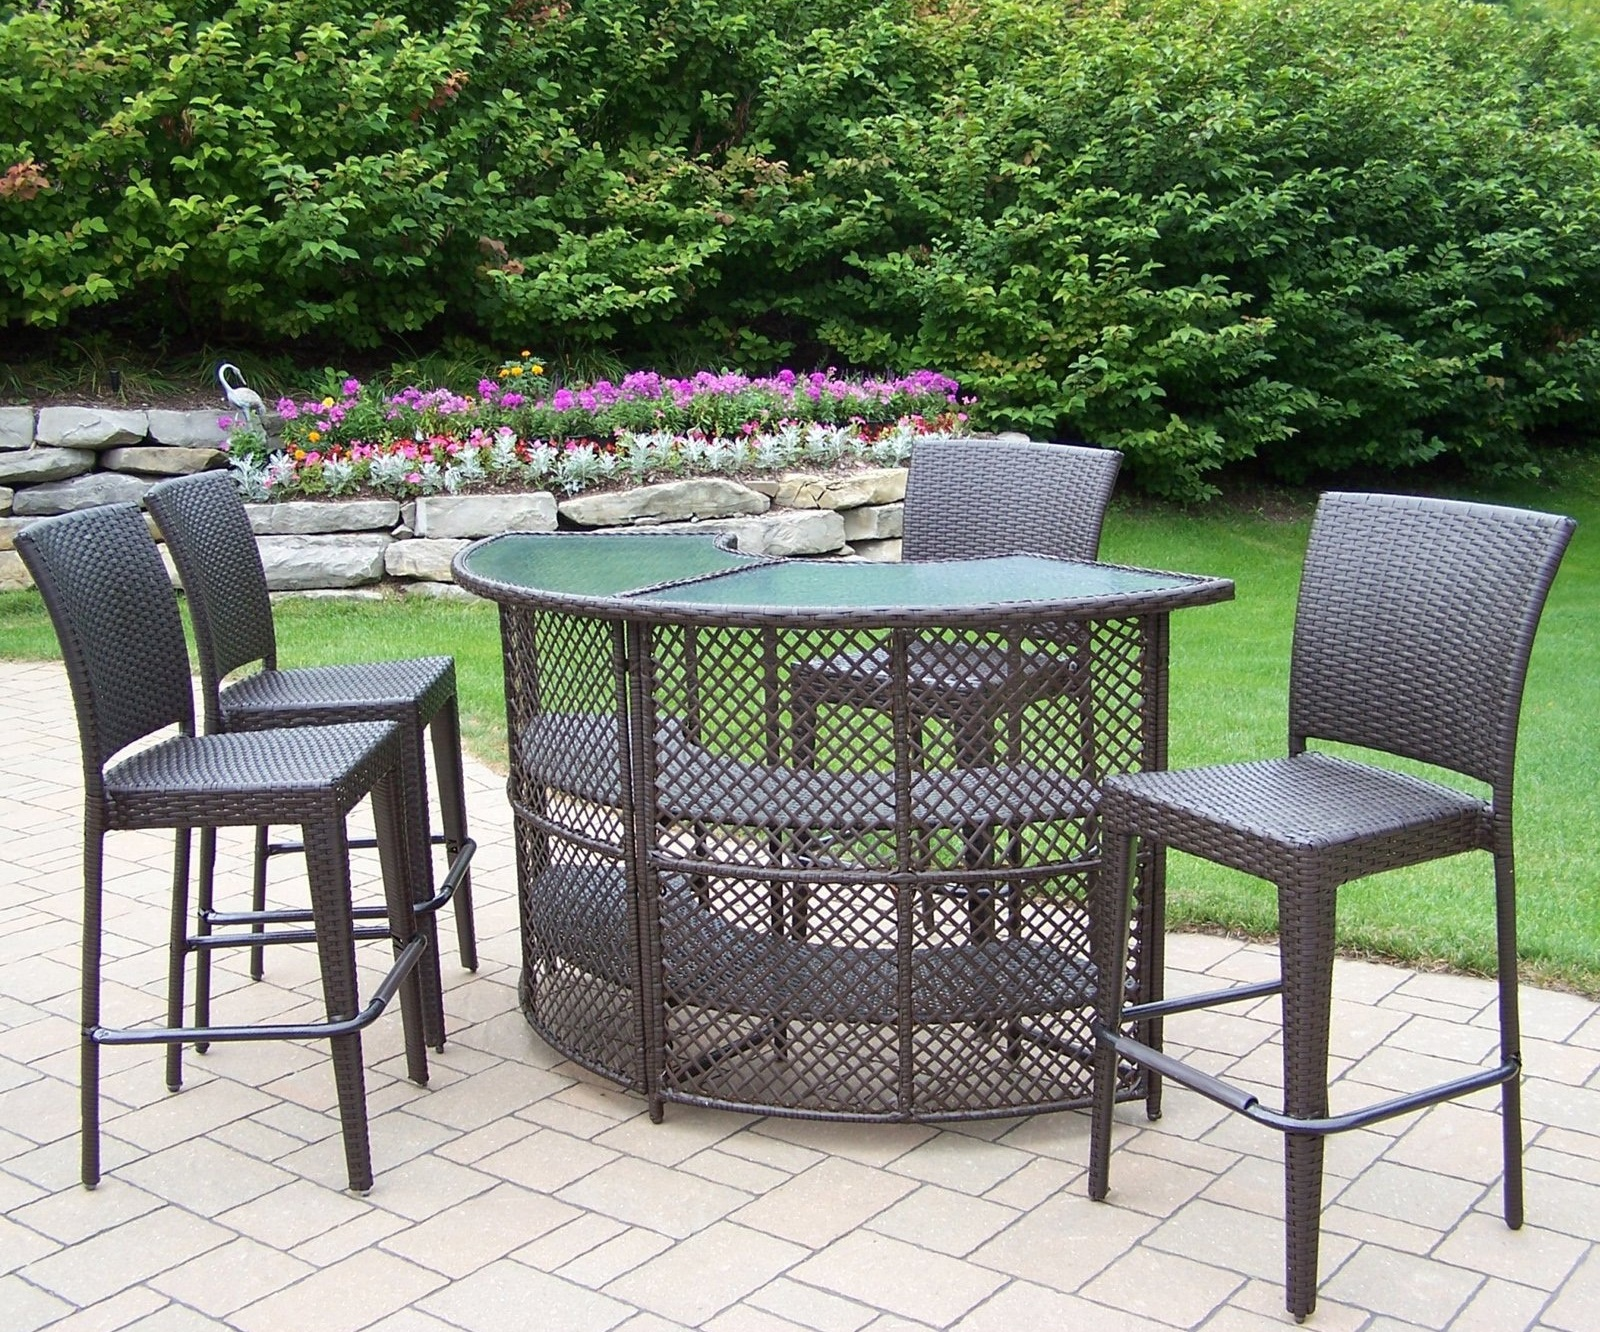 Outdoor patio bar sets image pixelmaricom for Outdoor patio bars for sale